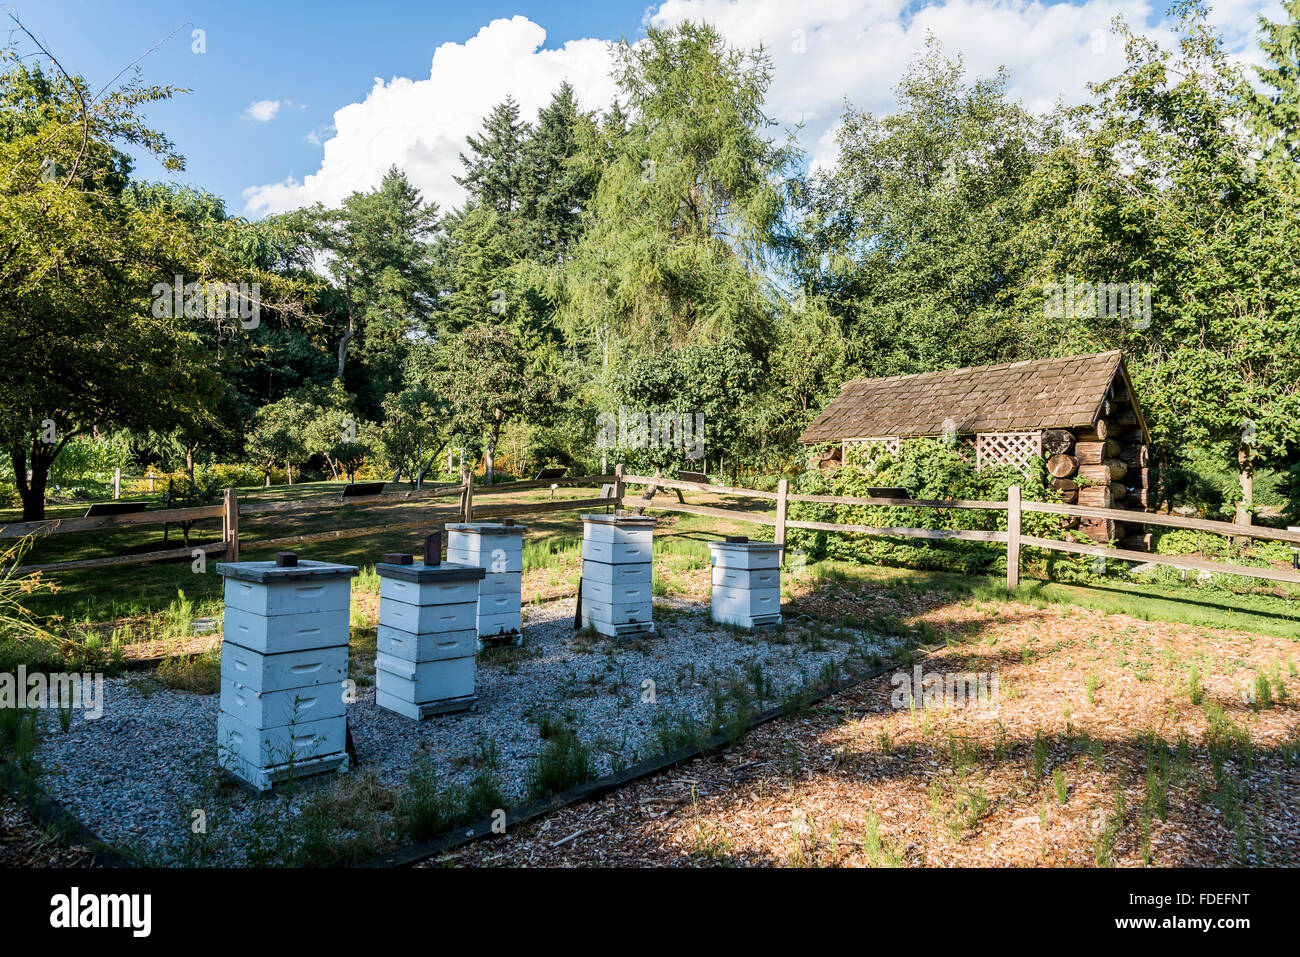 Bee hives and old log shed, VanDusen Gardens, Vancouvrt, British Columbia, Canada - Stock Image